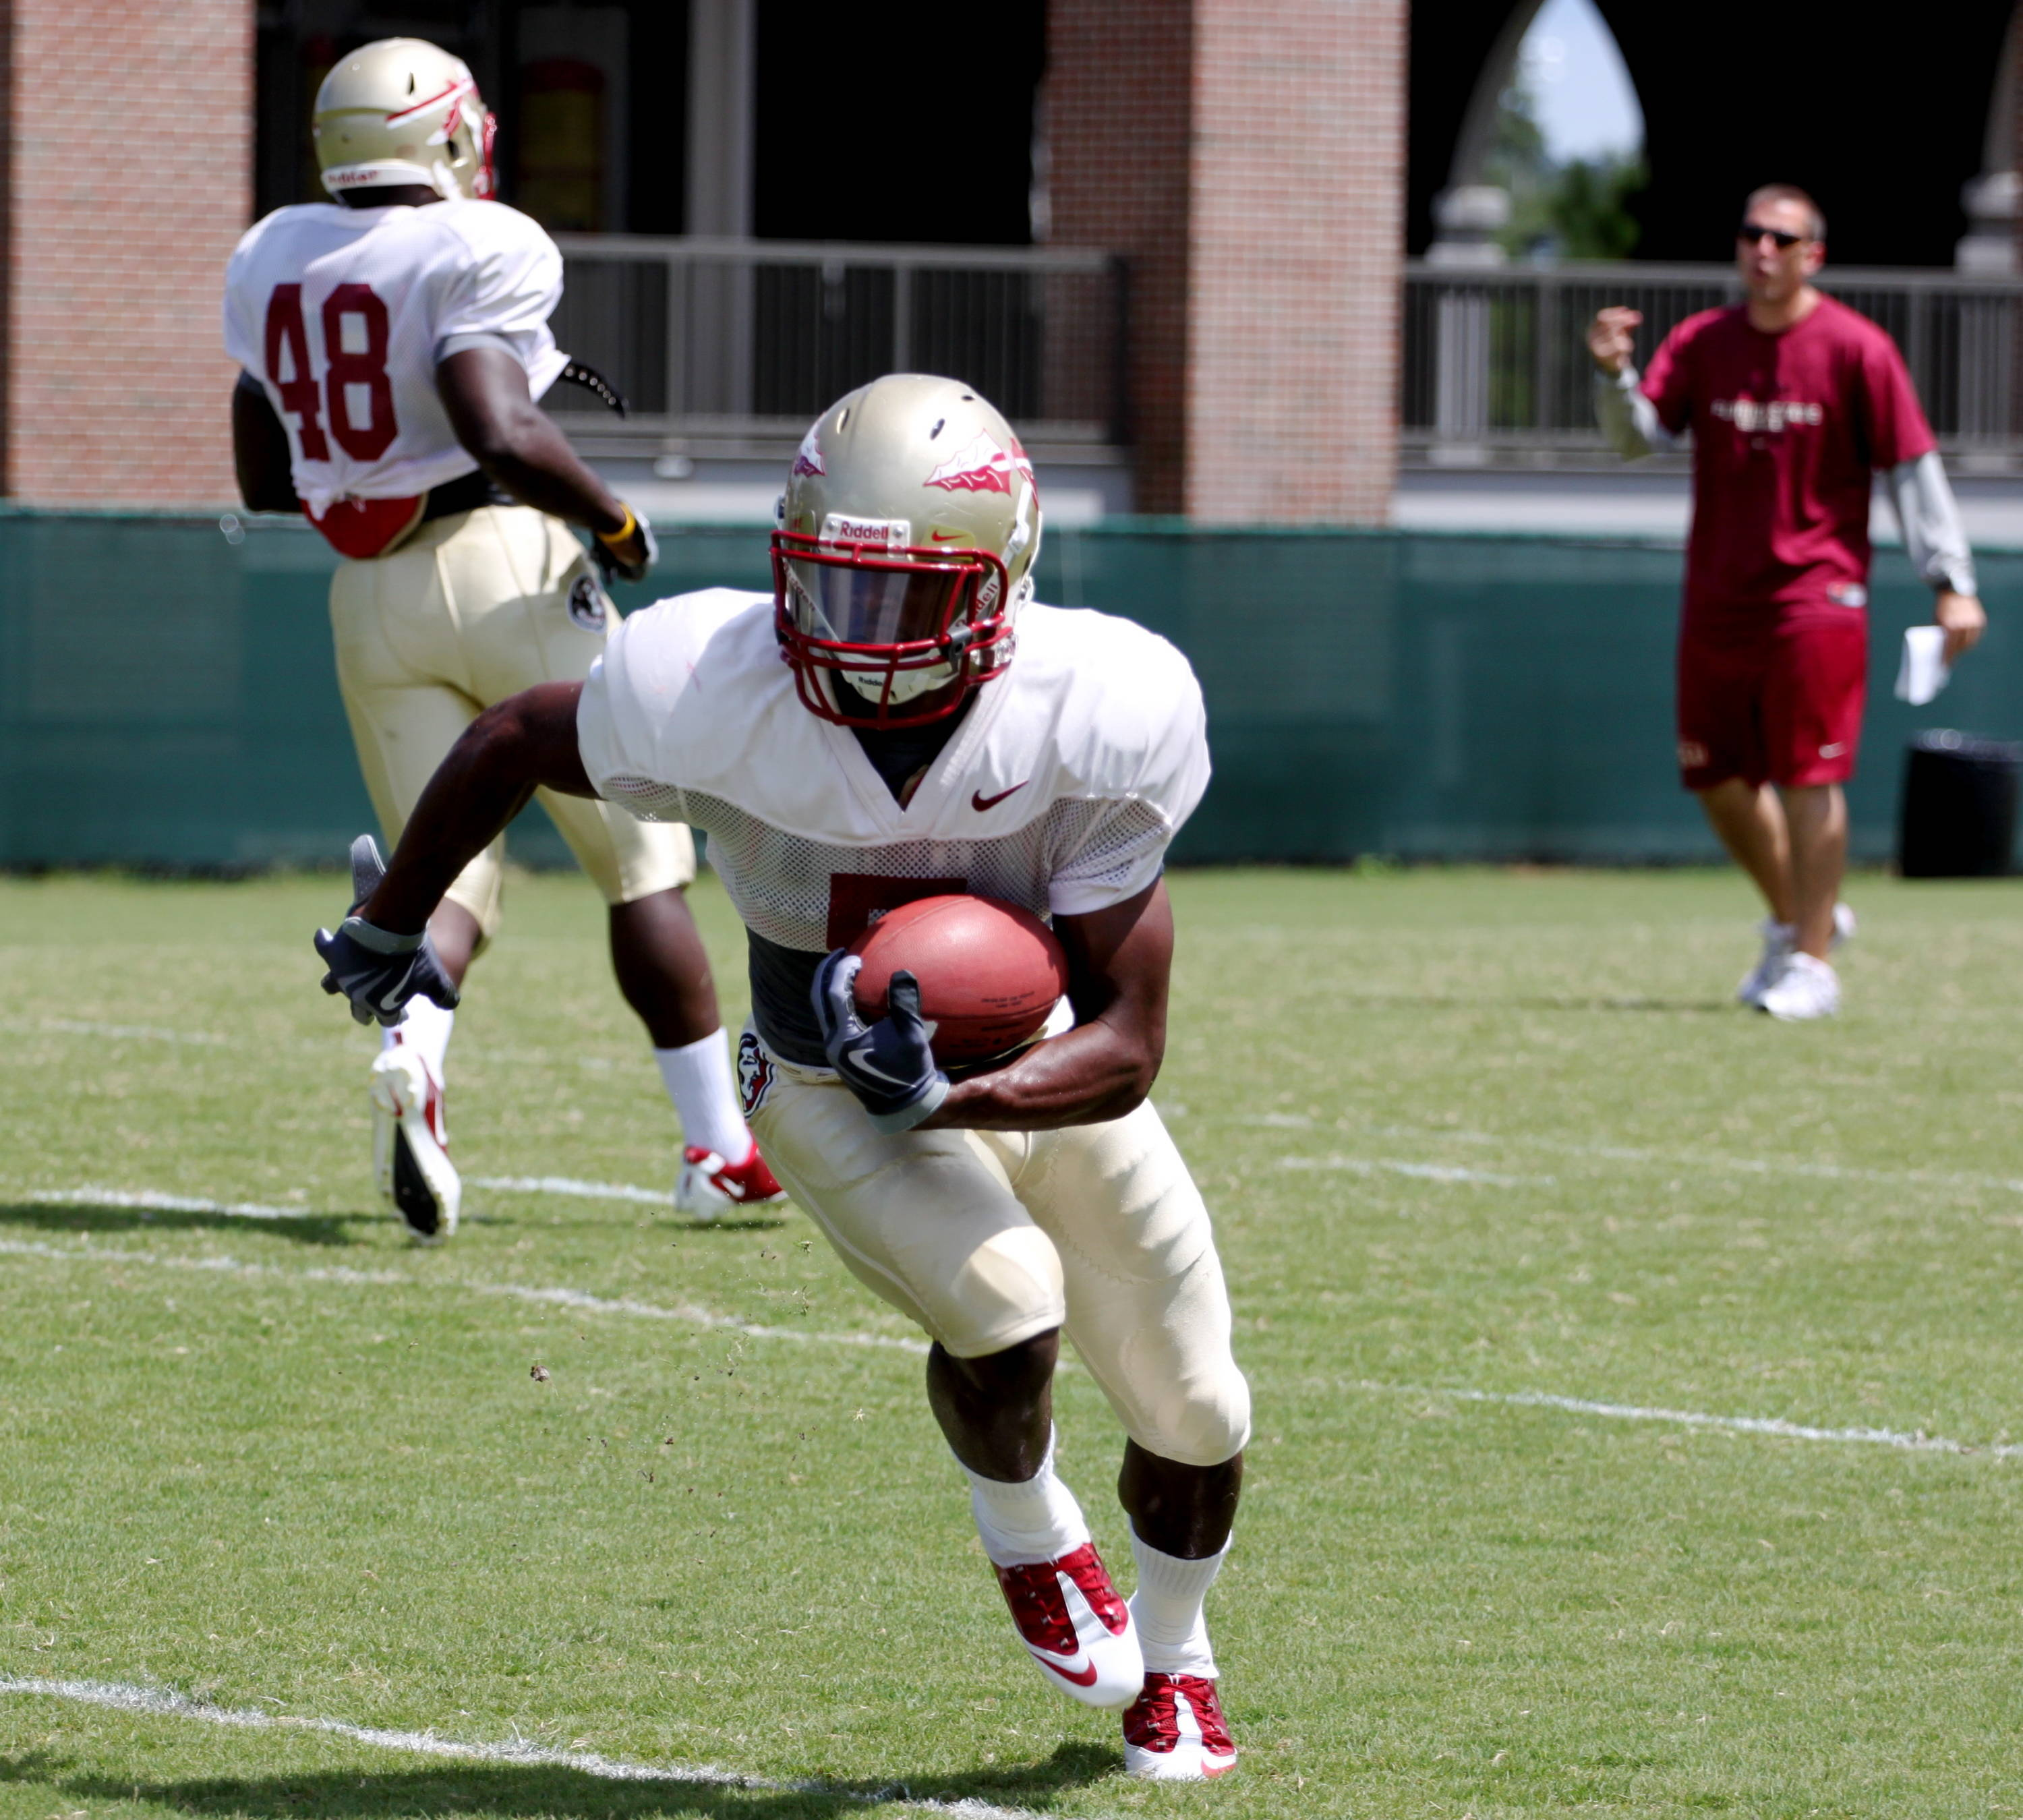 Greg Reid (5) with the ball during special teams drills